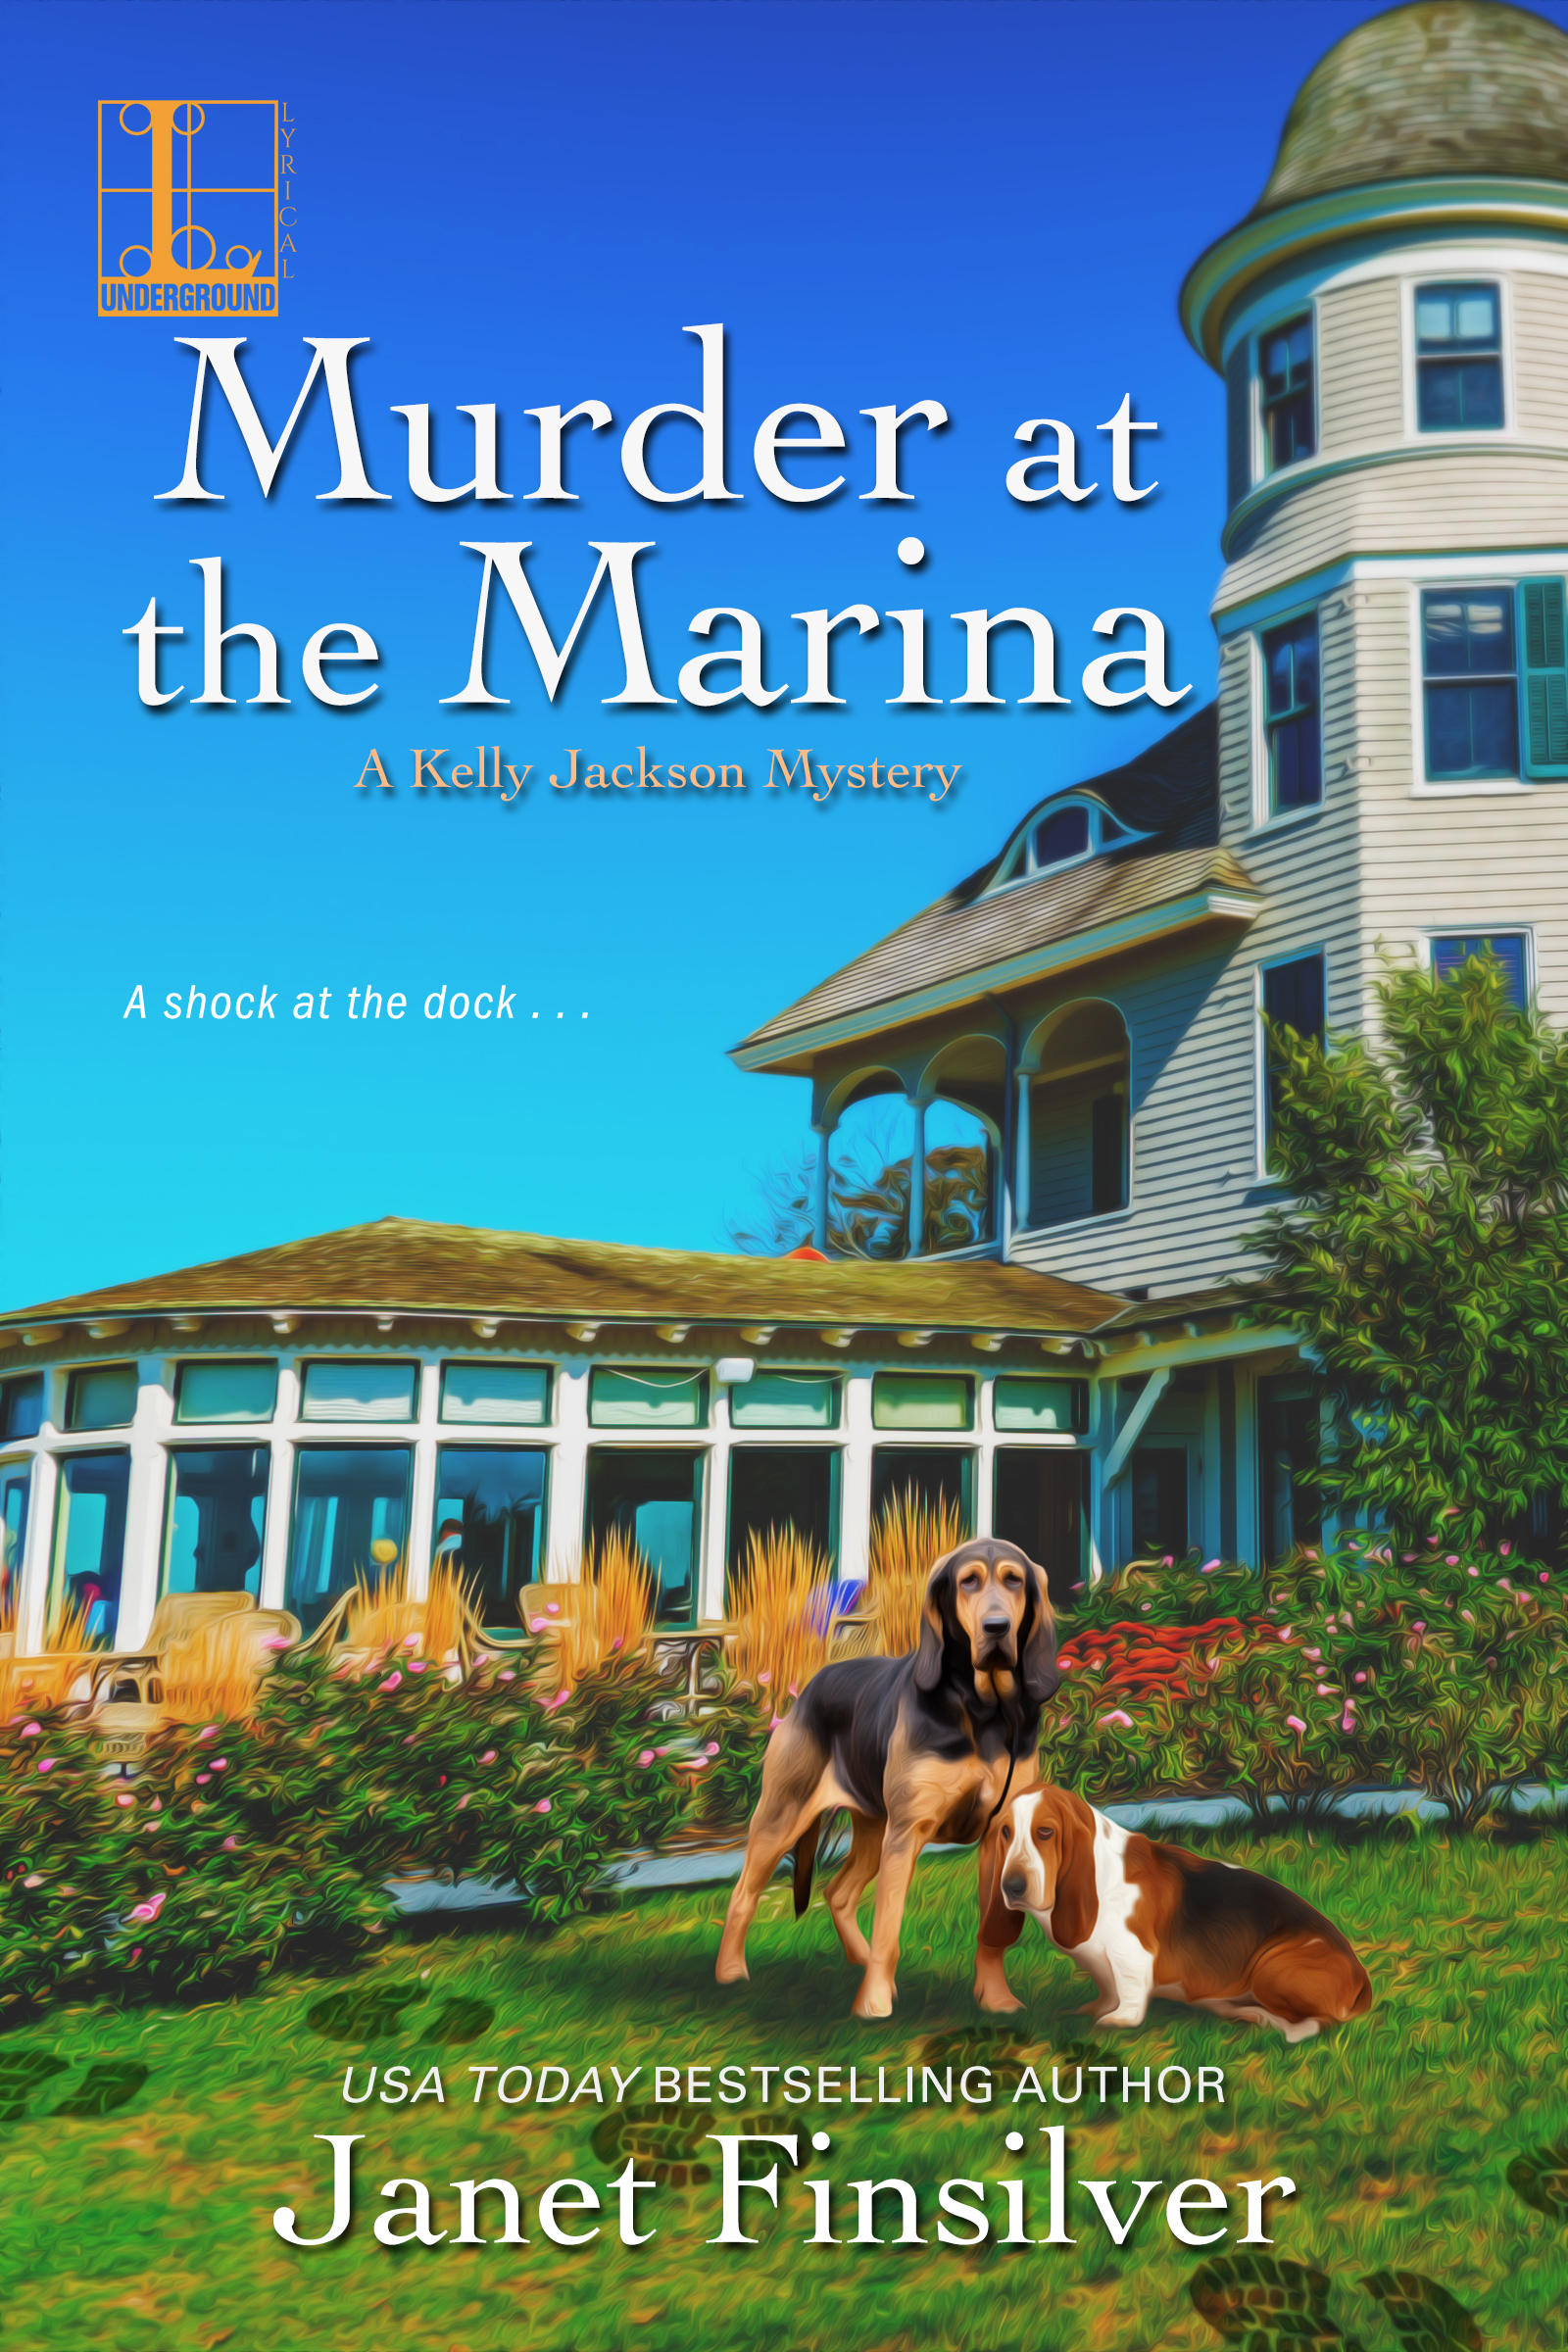 Murder Aa the Marina is the fifth in the Kelly Jackson cozy mystery series by Janet Finsilver set in the Mendocino area of northern California.